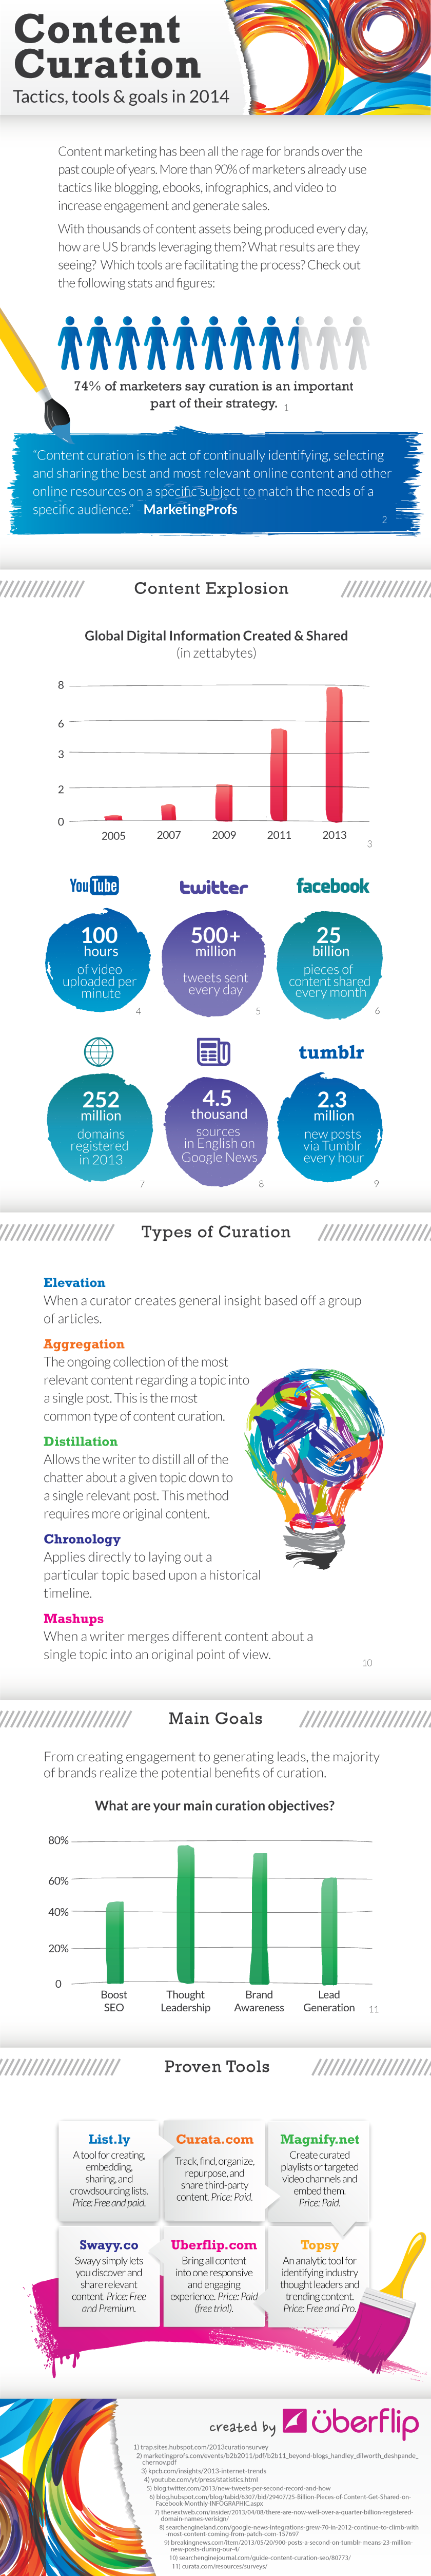 Content Curation Tactics And Tools To Use In 2014 - infographic